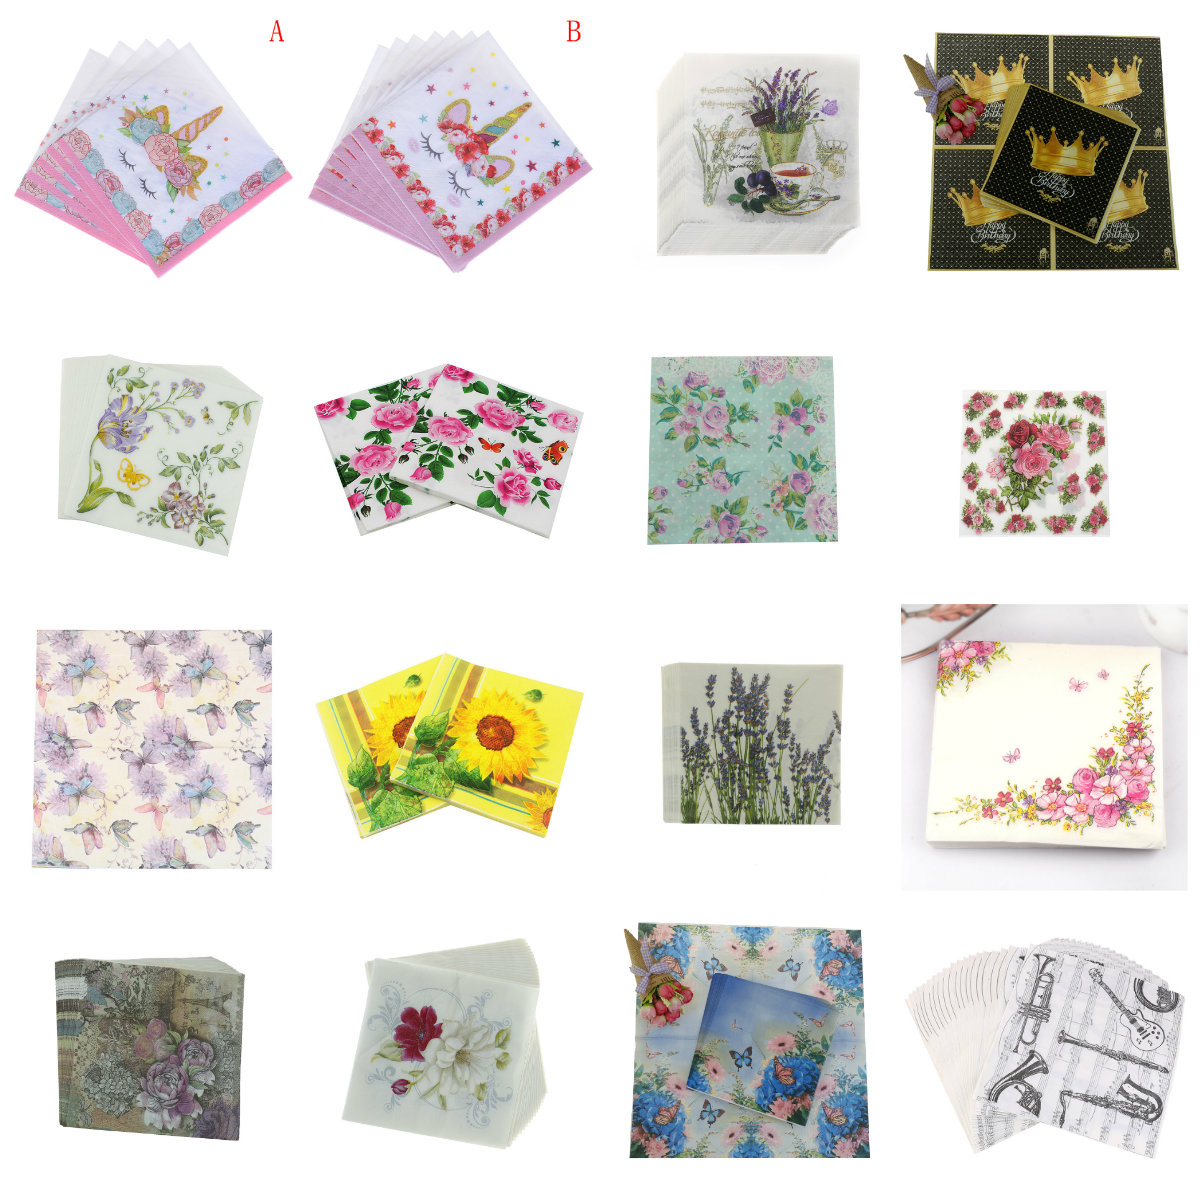 4 Single Lunch Paper Napkins for Decoupage Craft Napkin POLLY linen